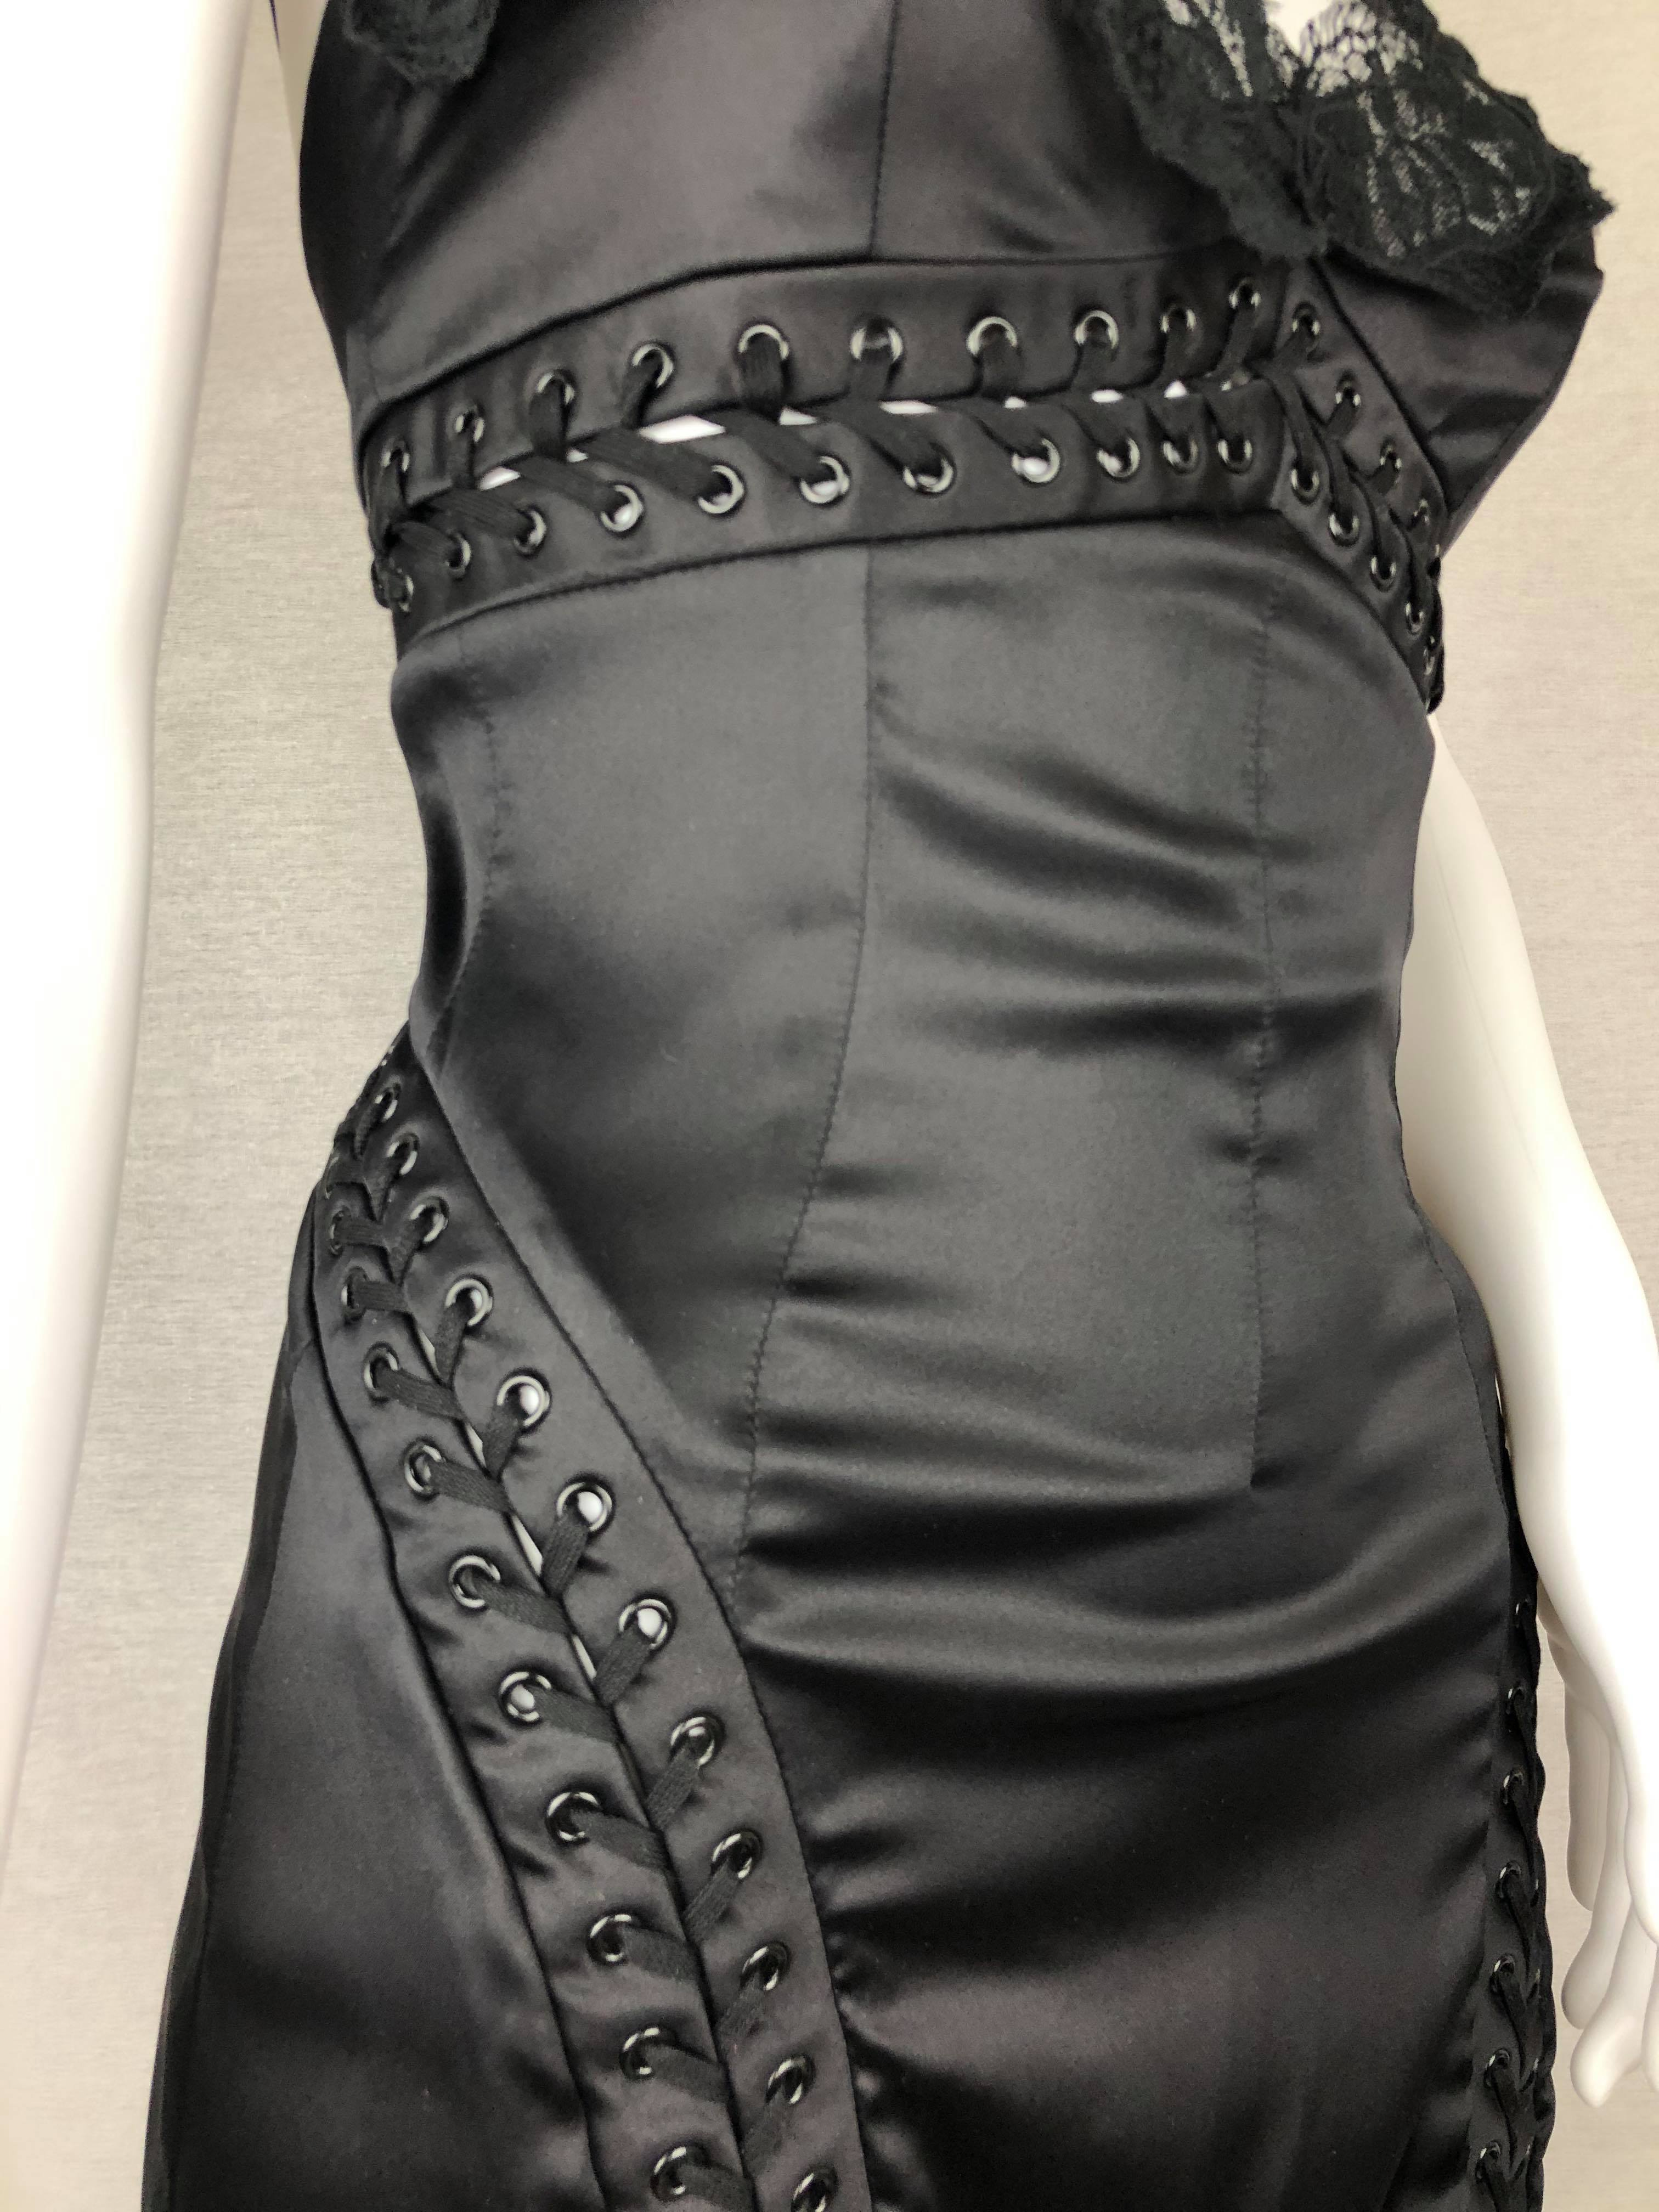 Dolce & Gabbana bondage dress from Spring 2003 collection